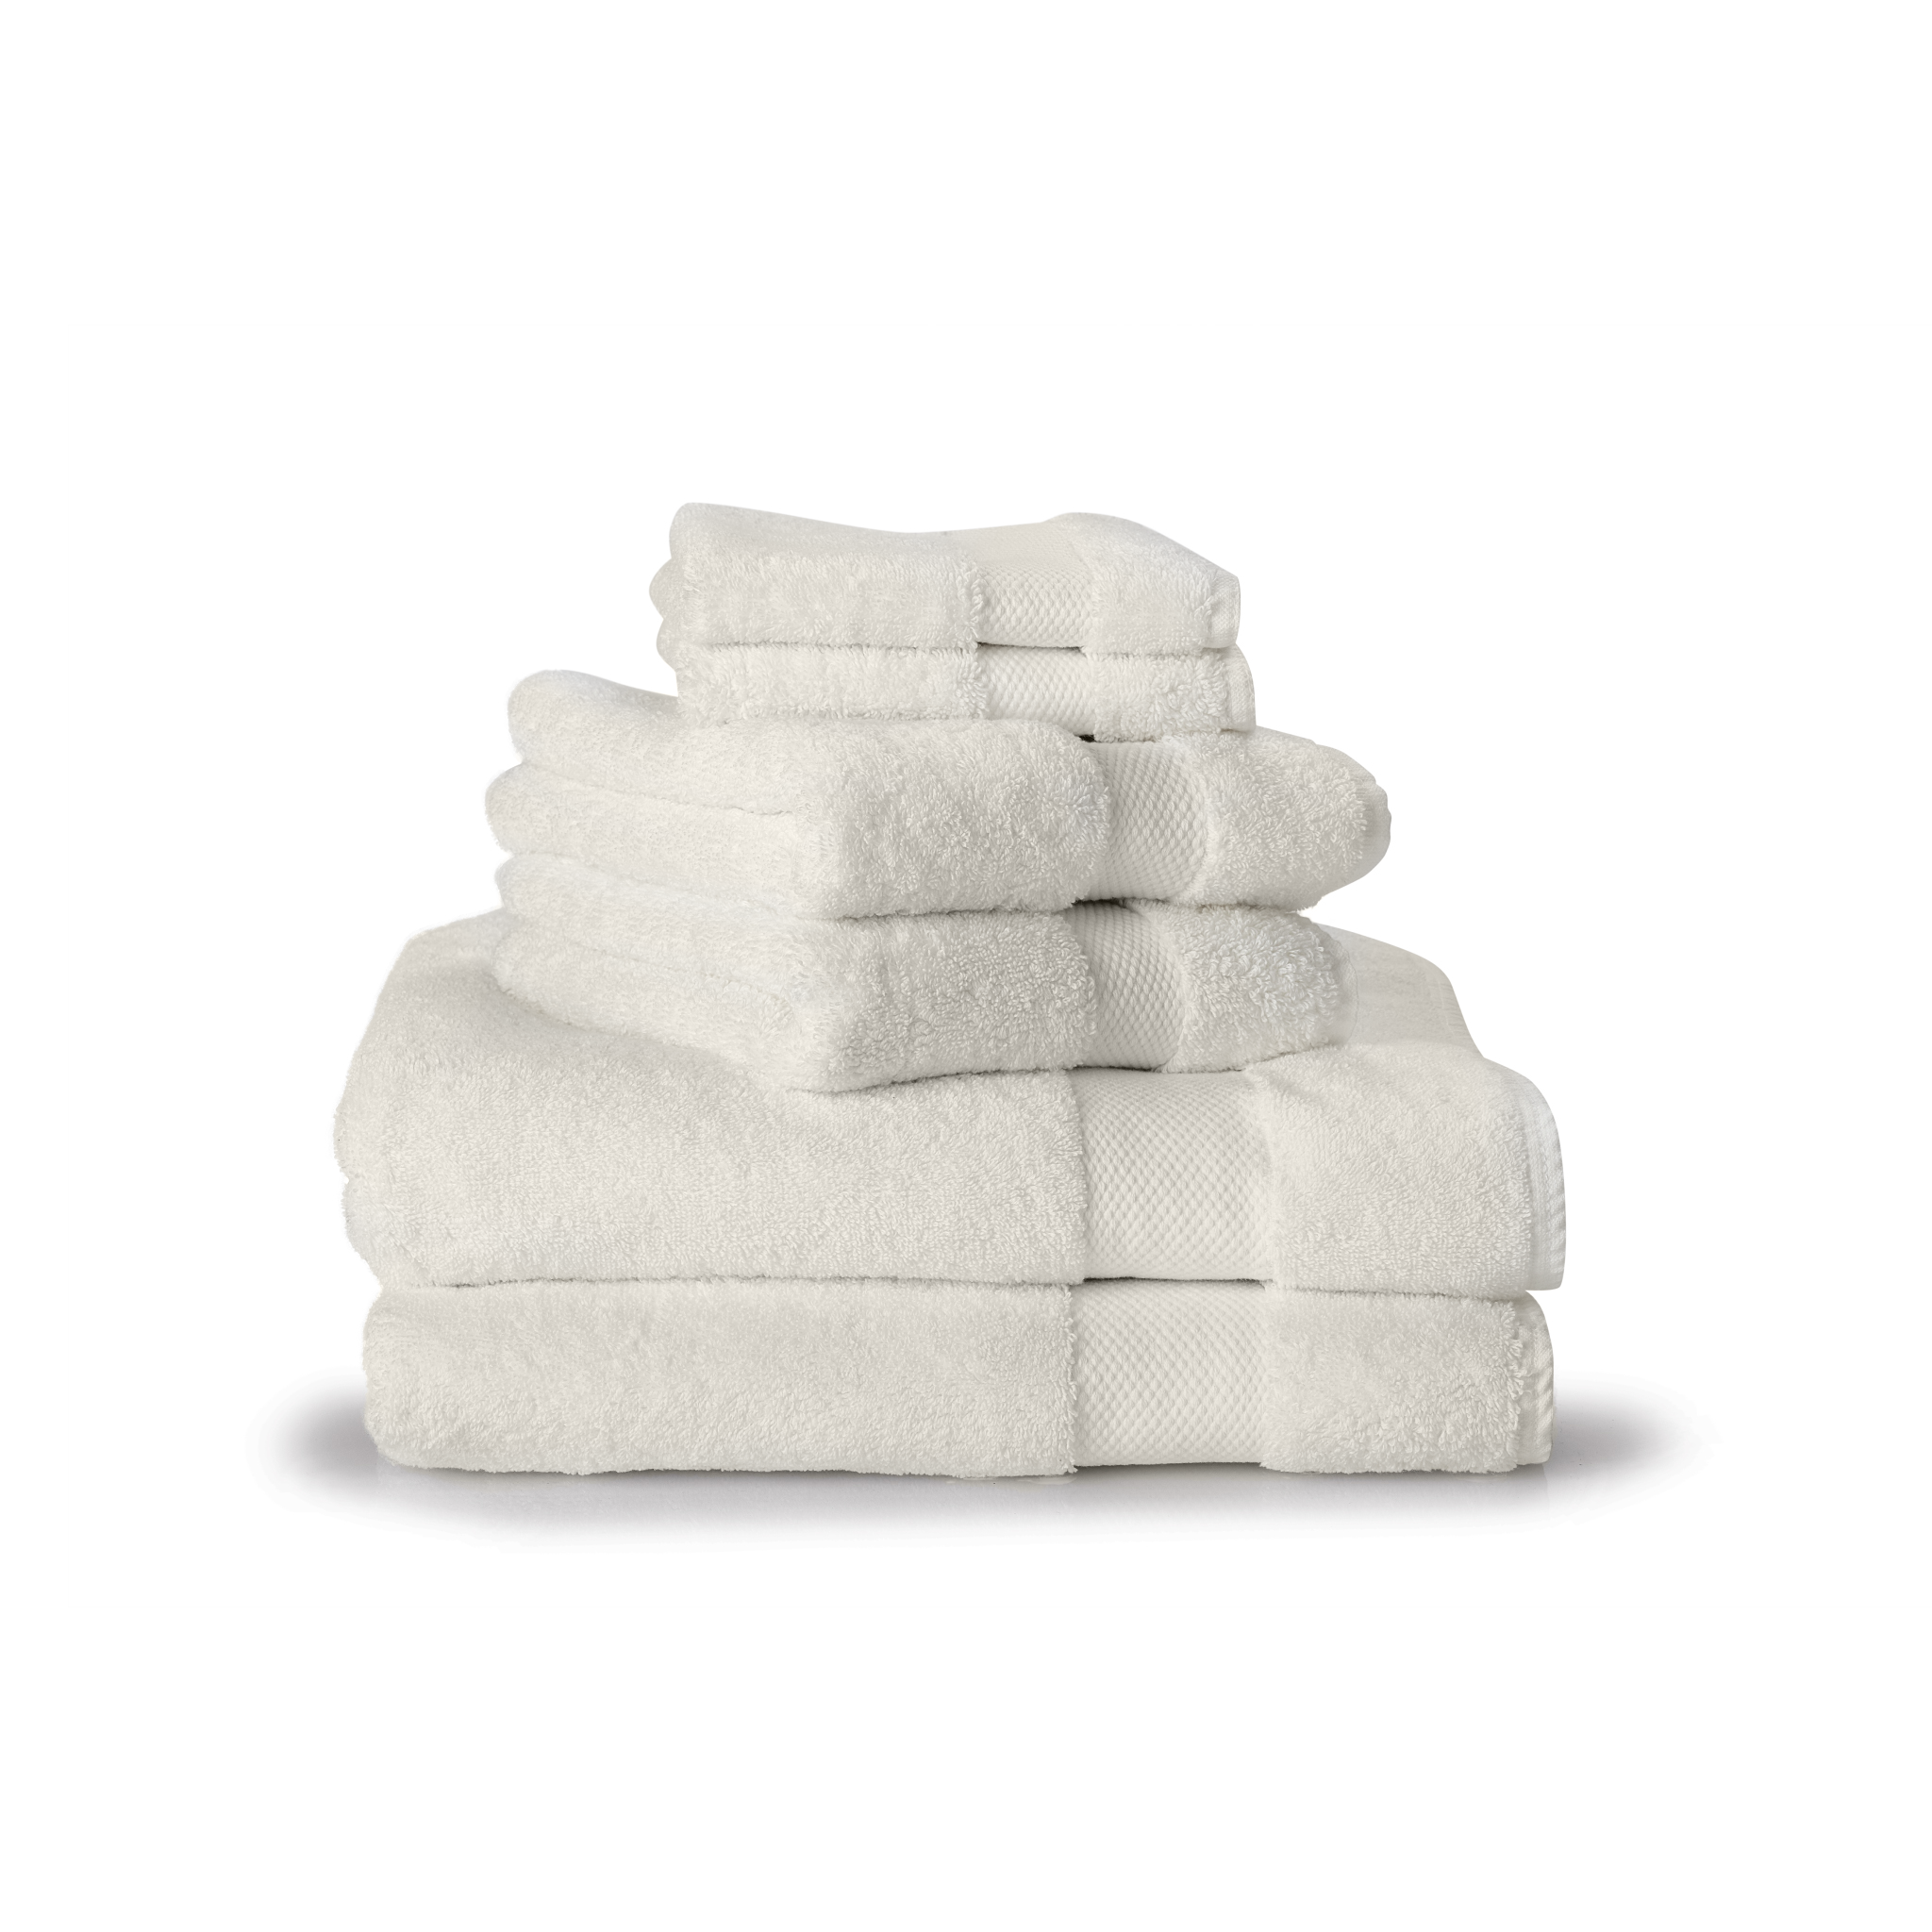 Plush Bath Towel Sets